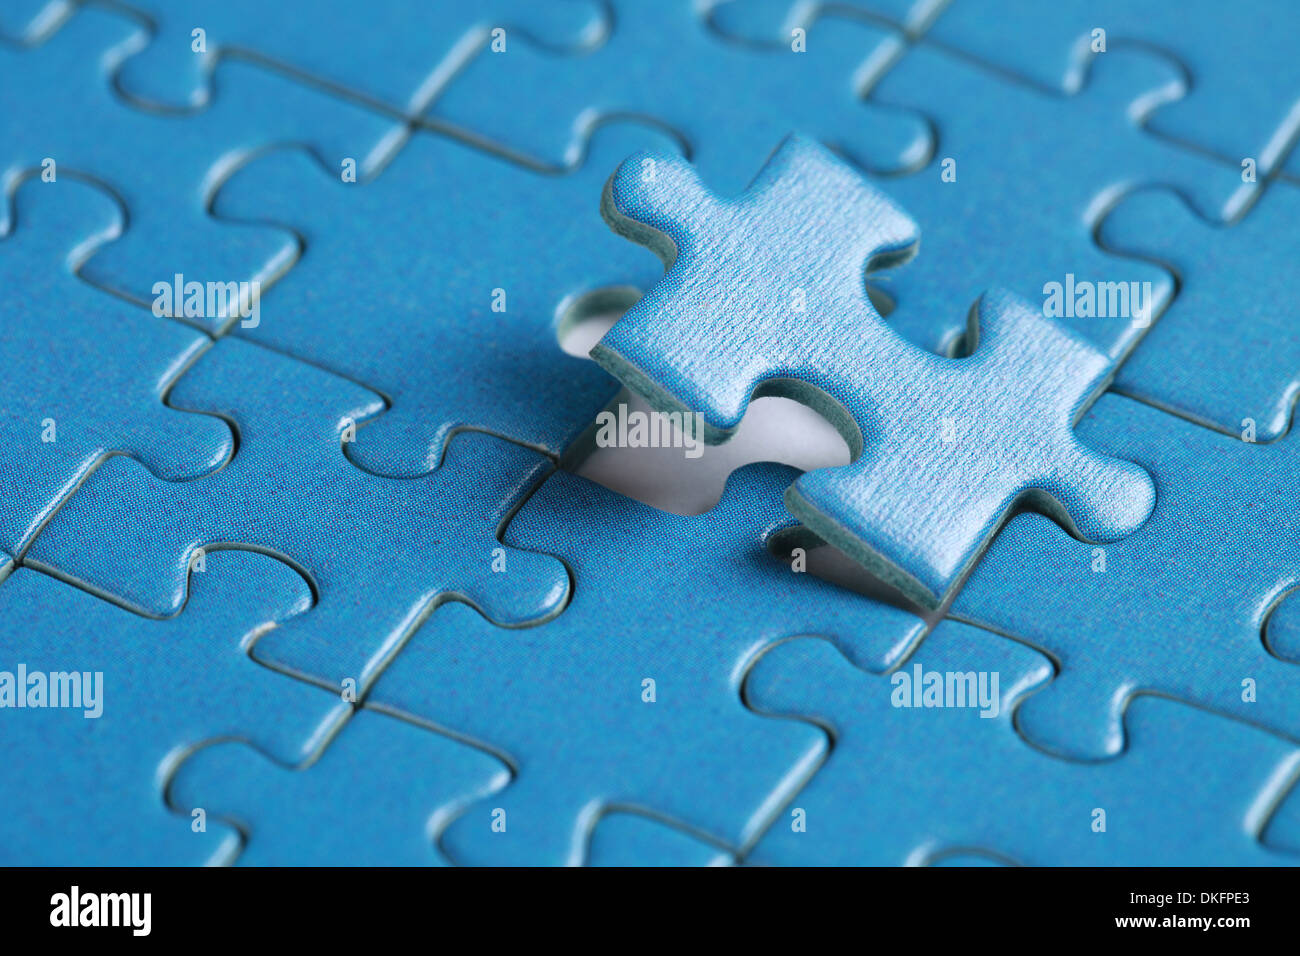 Final piece of jigsaw problem solution topic - Stock Image